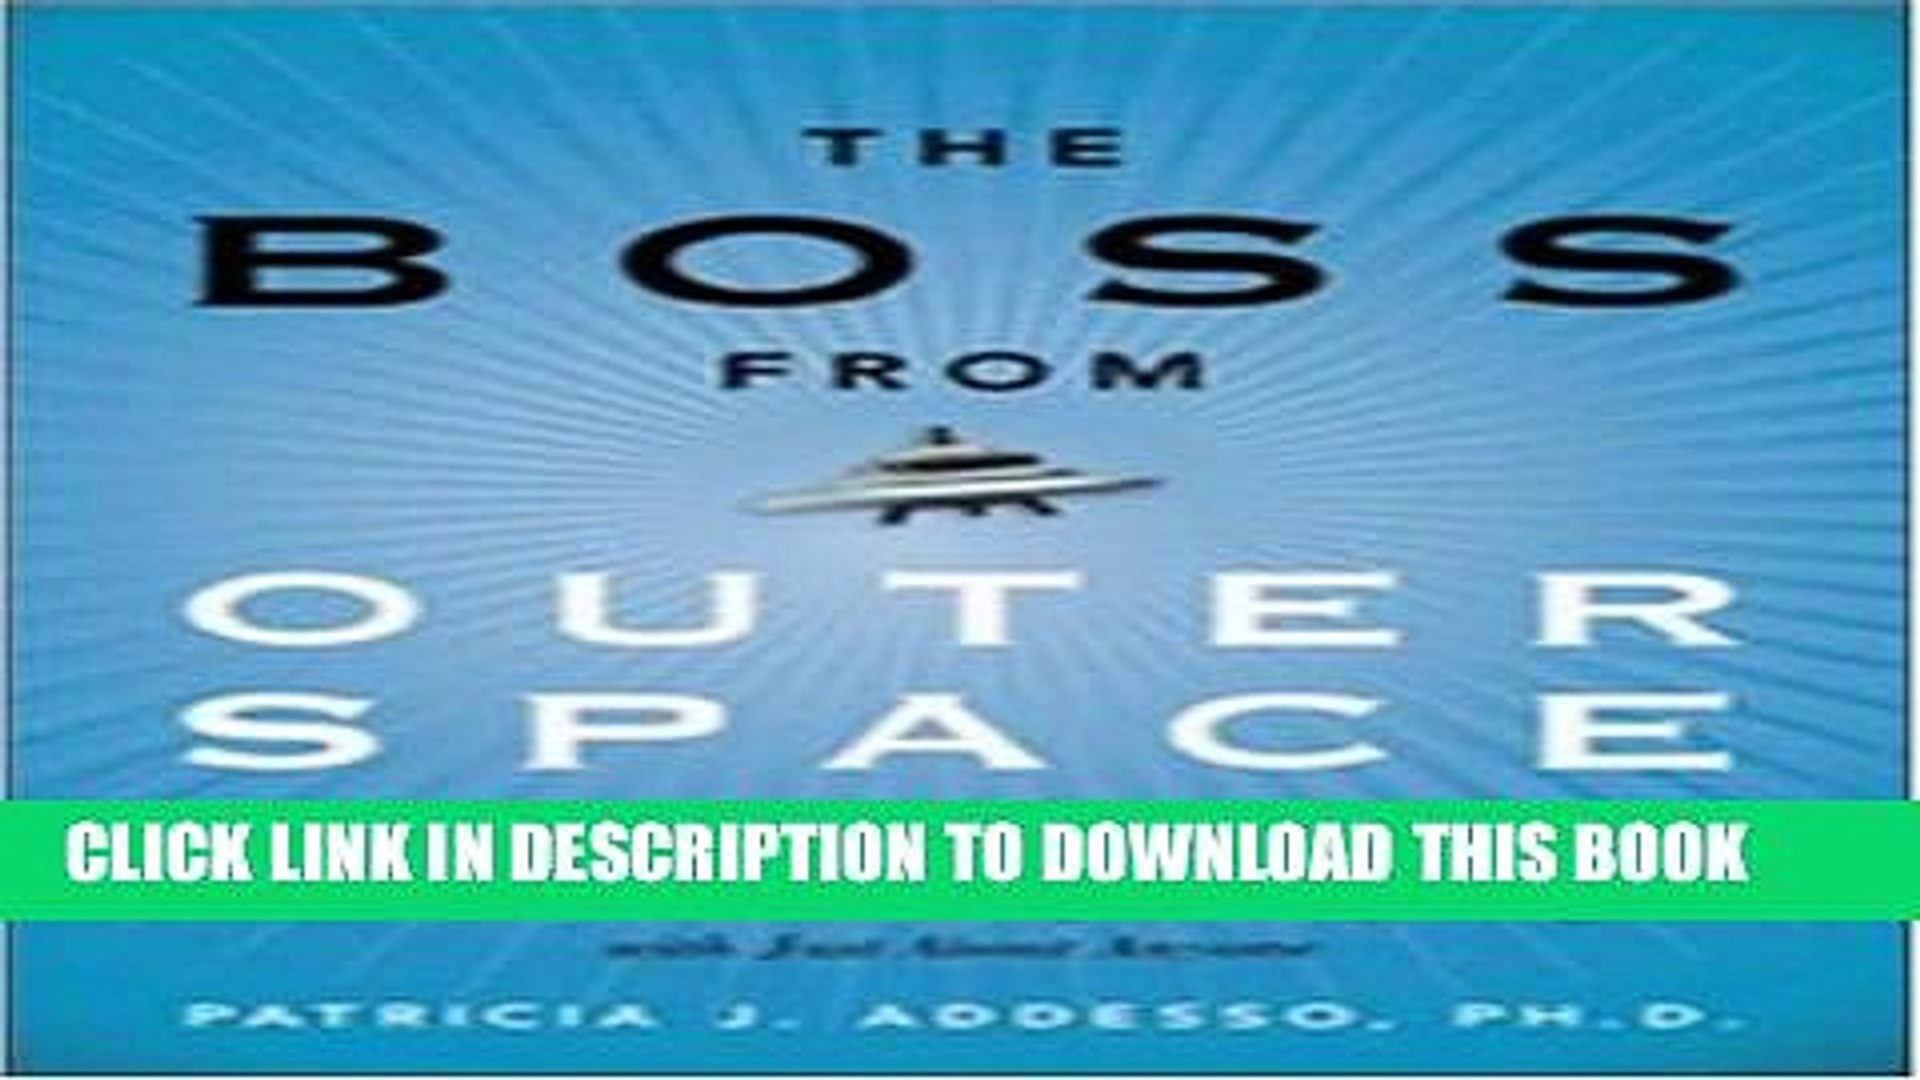 [PDF] The Boss from Outer Space and Other Aliens at Work: A Down-to-Earth Guide for Getting Along